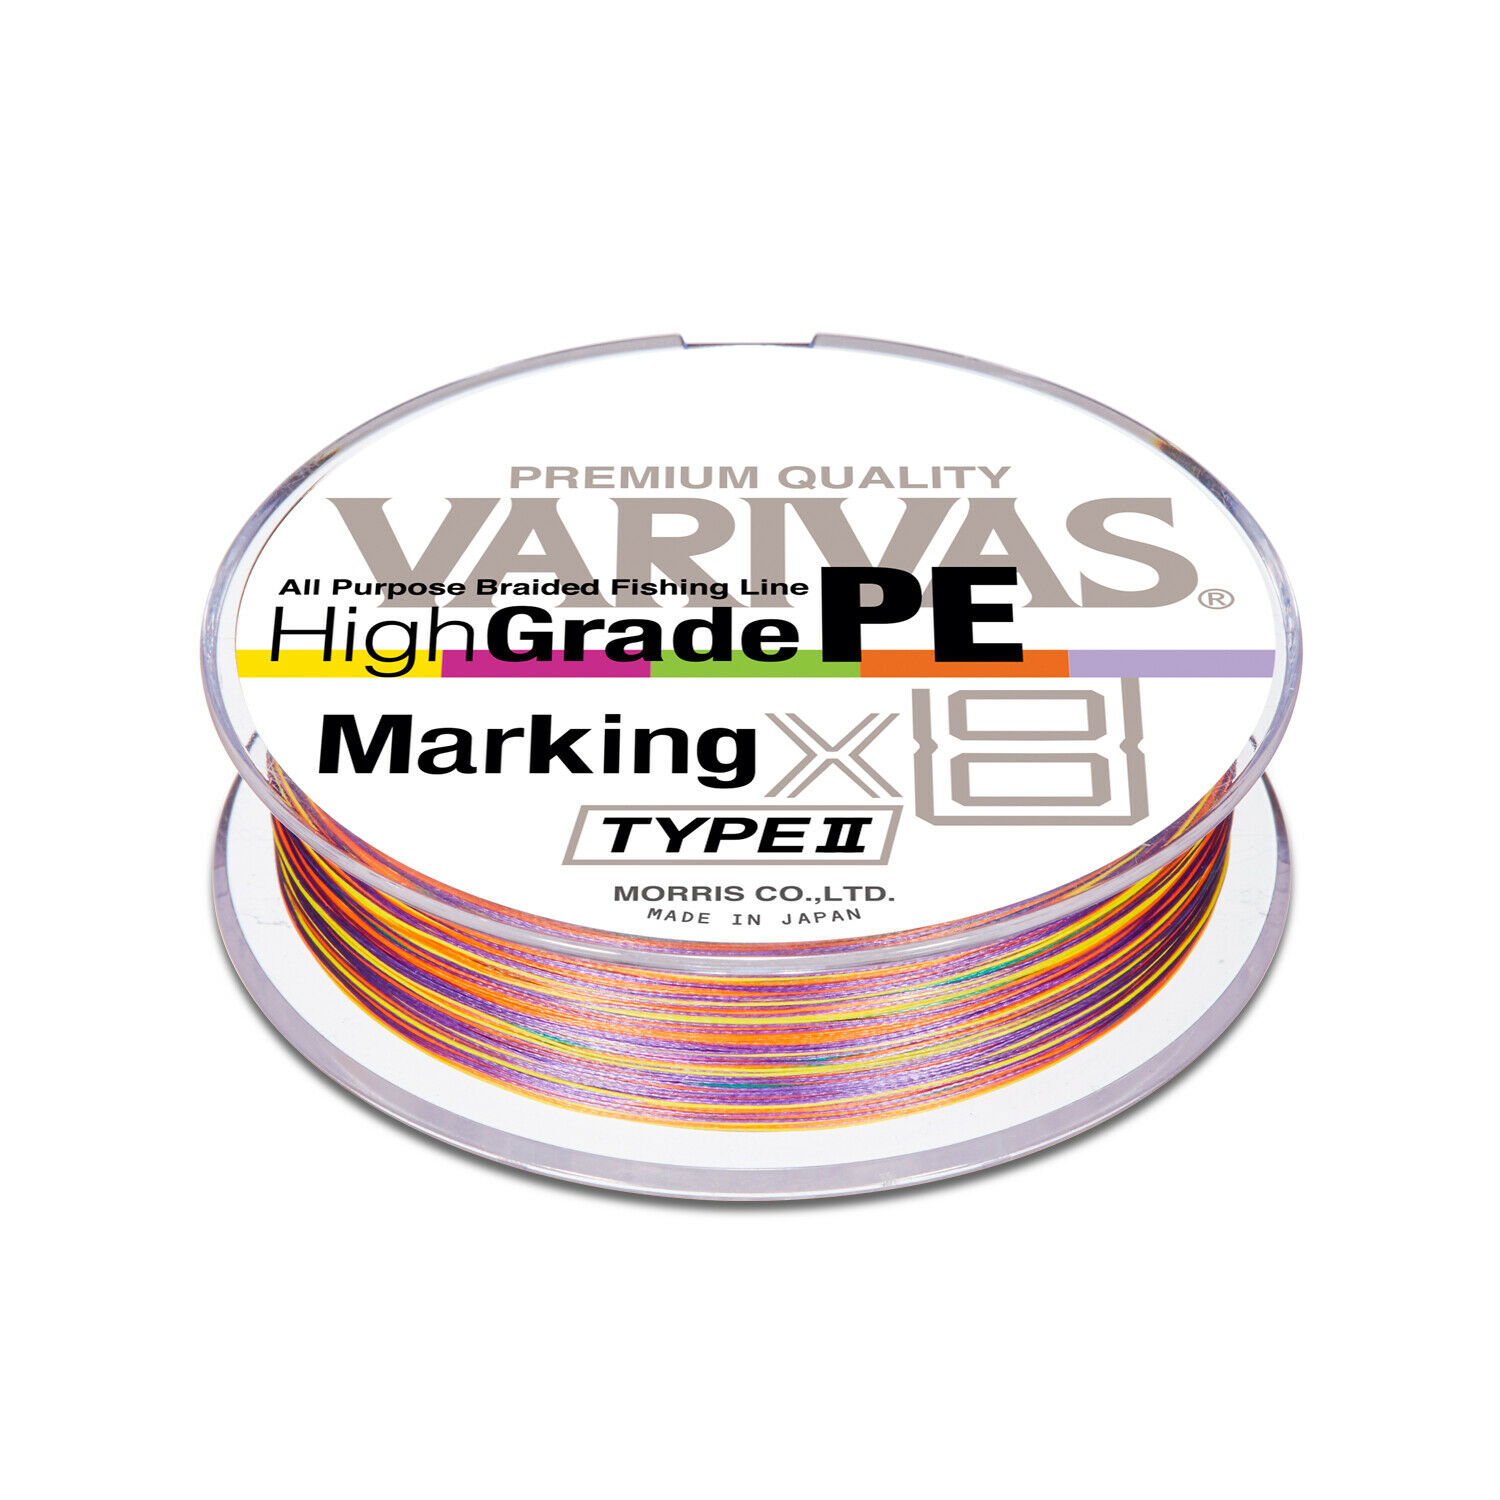 VARIVAS High  Grede PE X8 Marking TYPEII 200m.  lb variation.  quality first consumers first